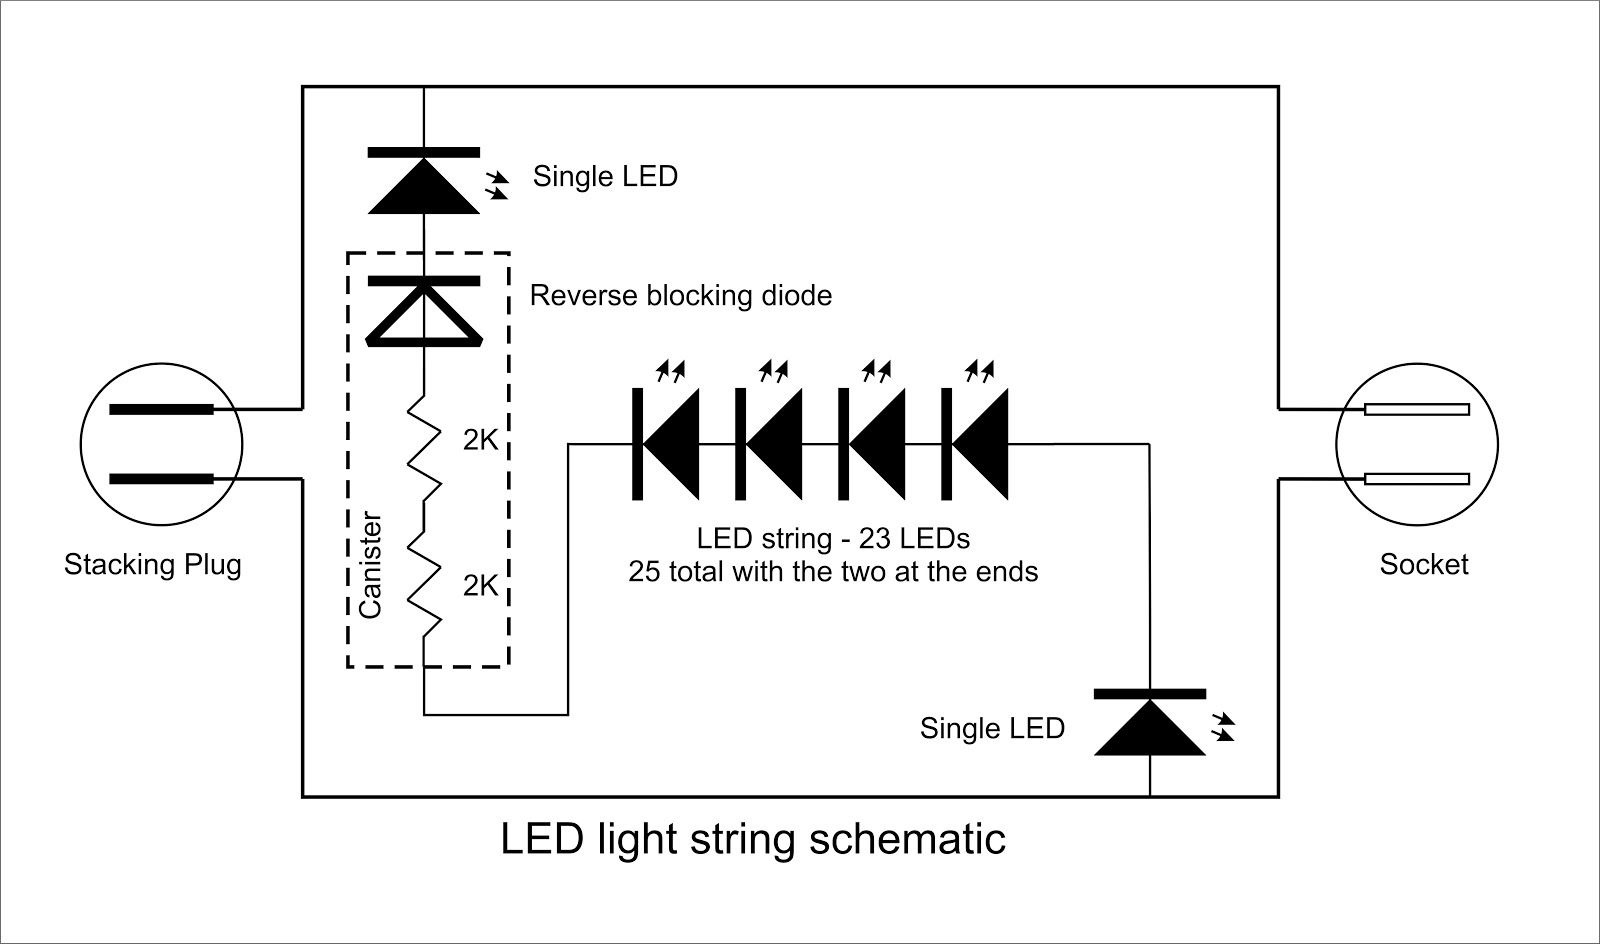 led light string schematic georgesworkshop fixing led string lights led lights wiring diagram at soozxer.org